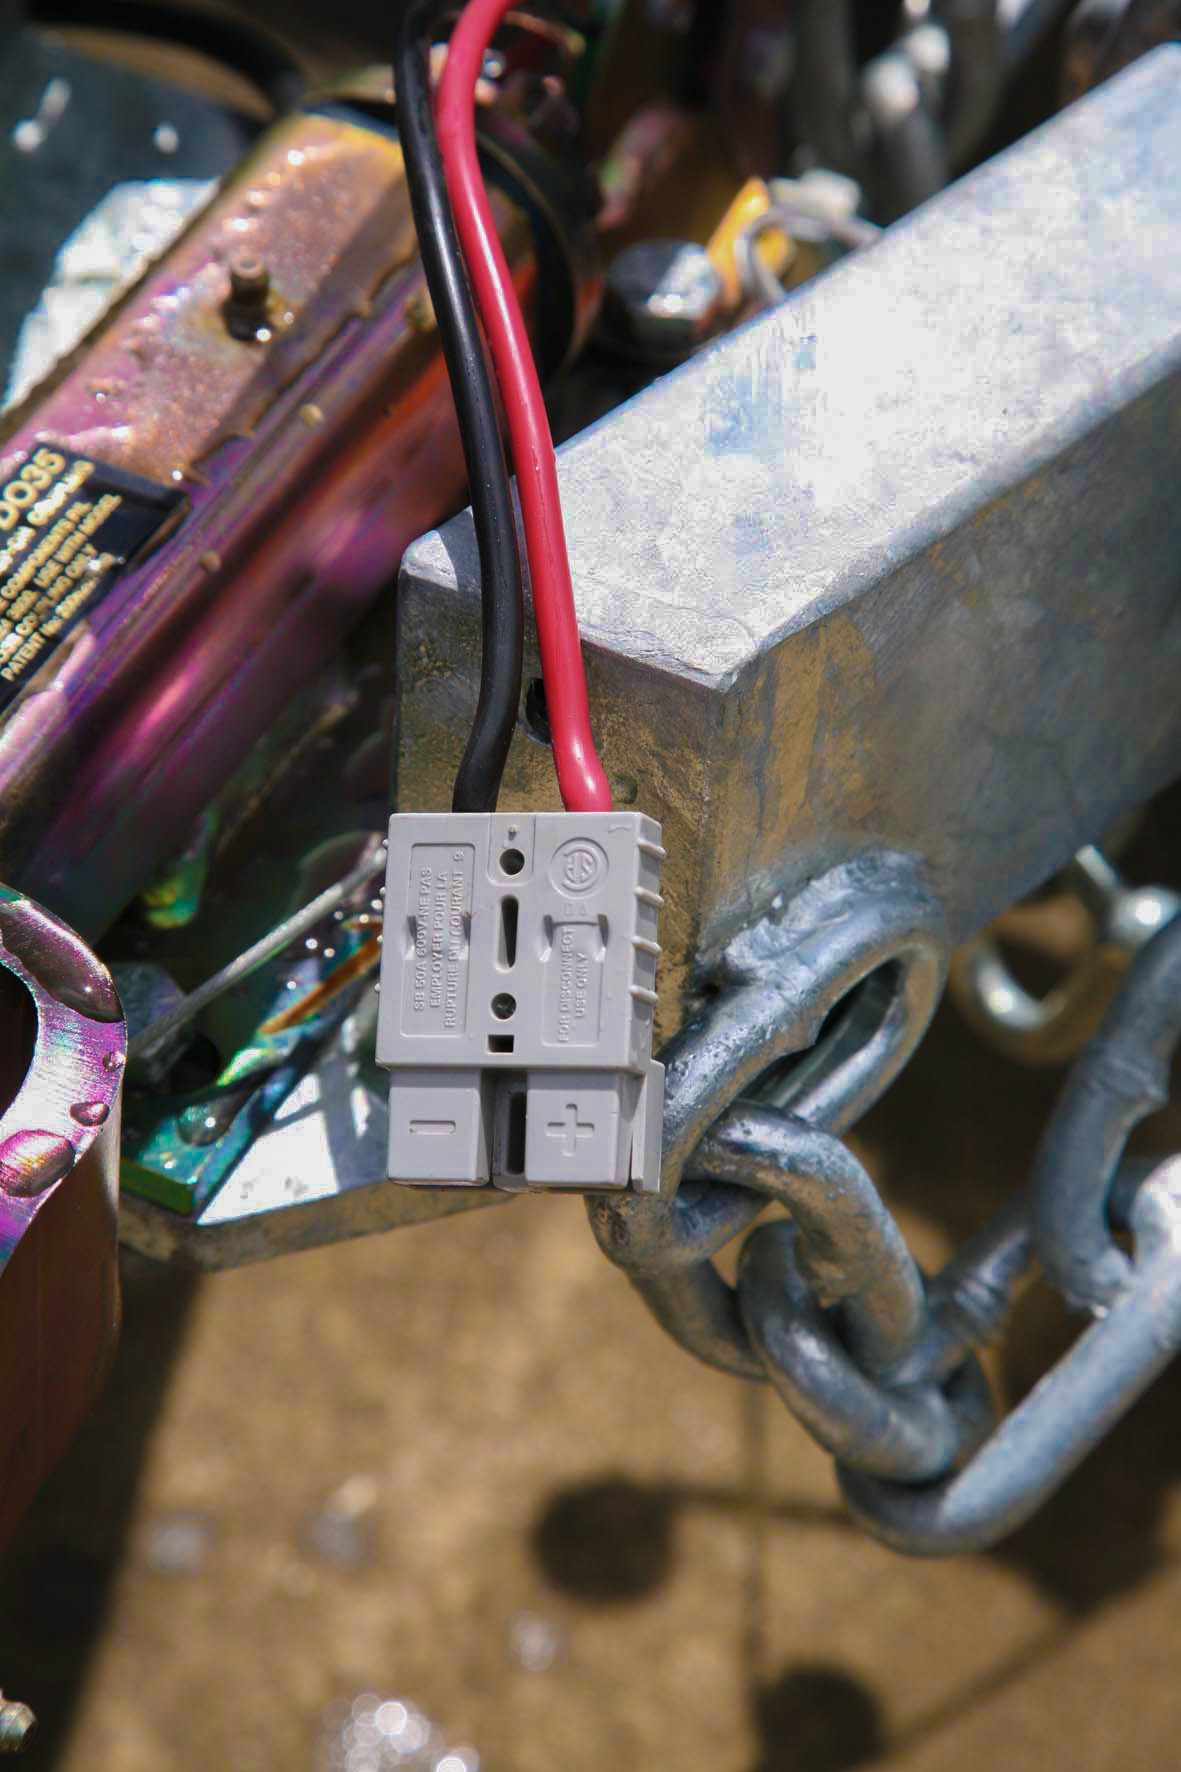 Caravan Electrical Systems Without A Hitch Wiring Switch Into 12v Circuit Along With The Basic System Used In Kingswood Viscount Era Long Gone Is Battery That Was Charged Only By Tow Vehicles Alternator